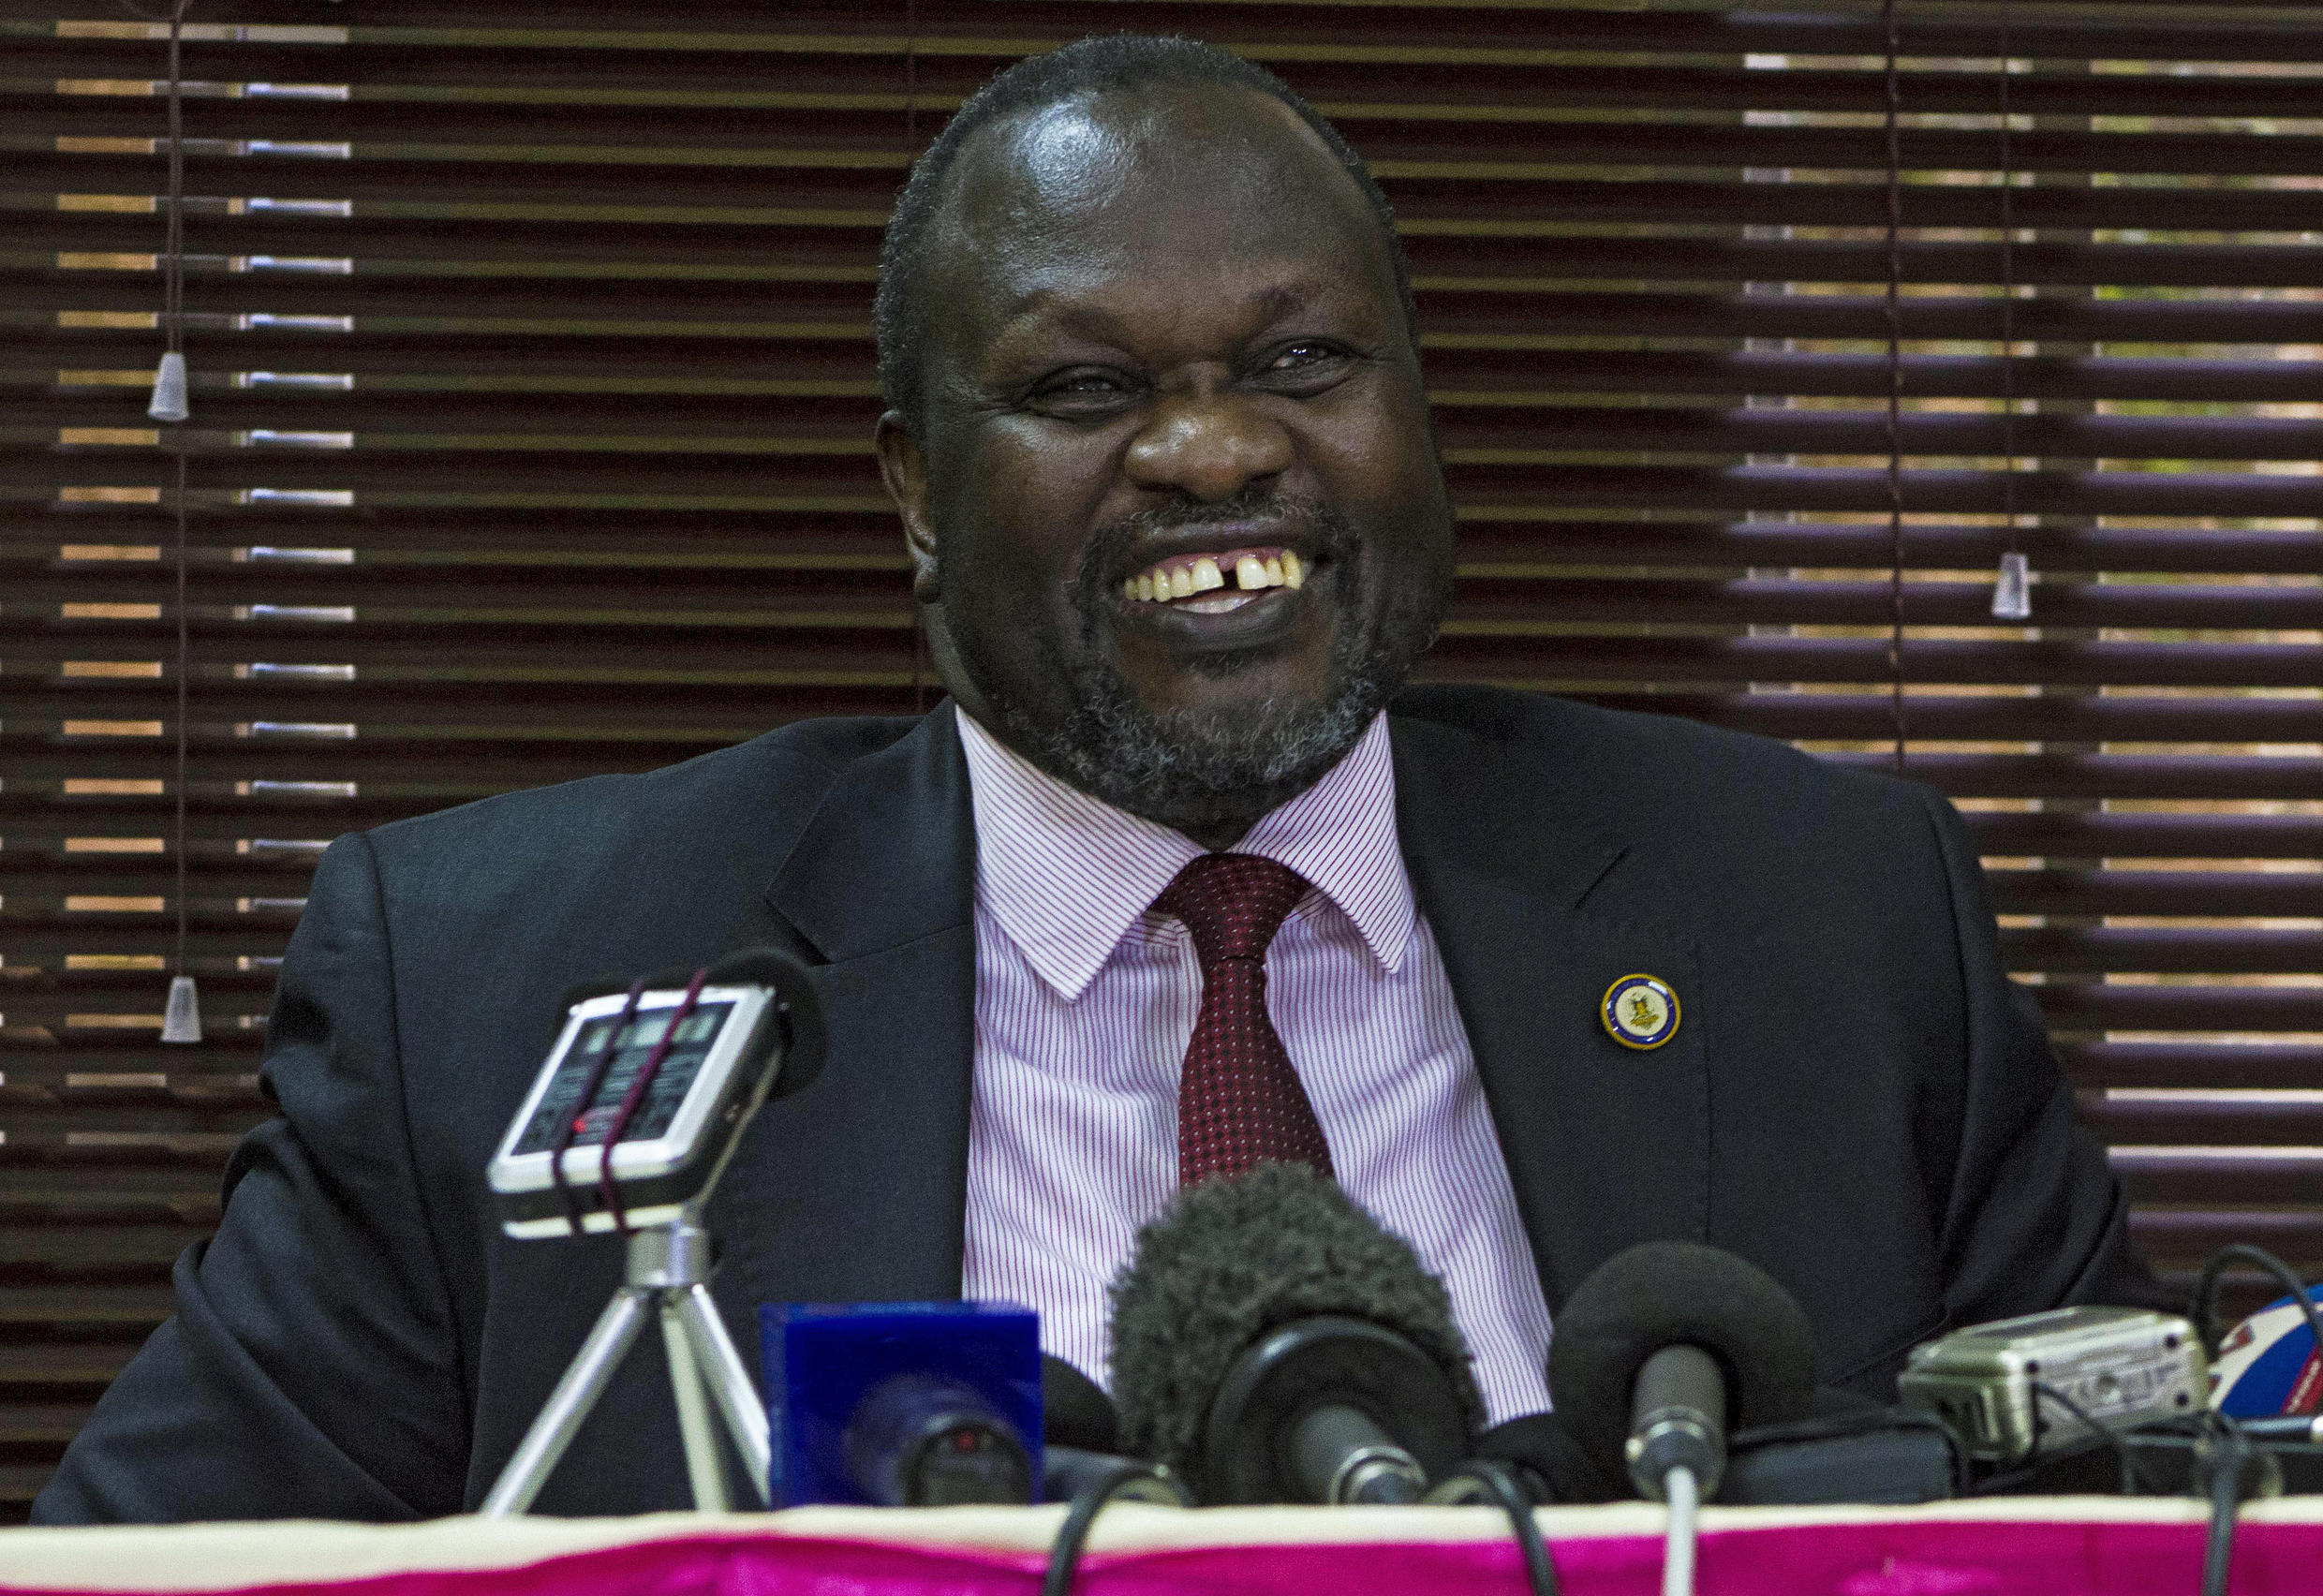 Riek Machar has been named the vice president of South Sudan.